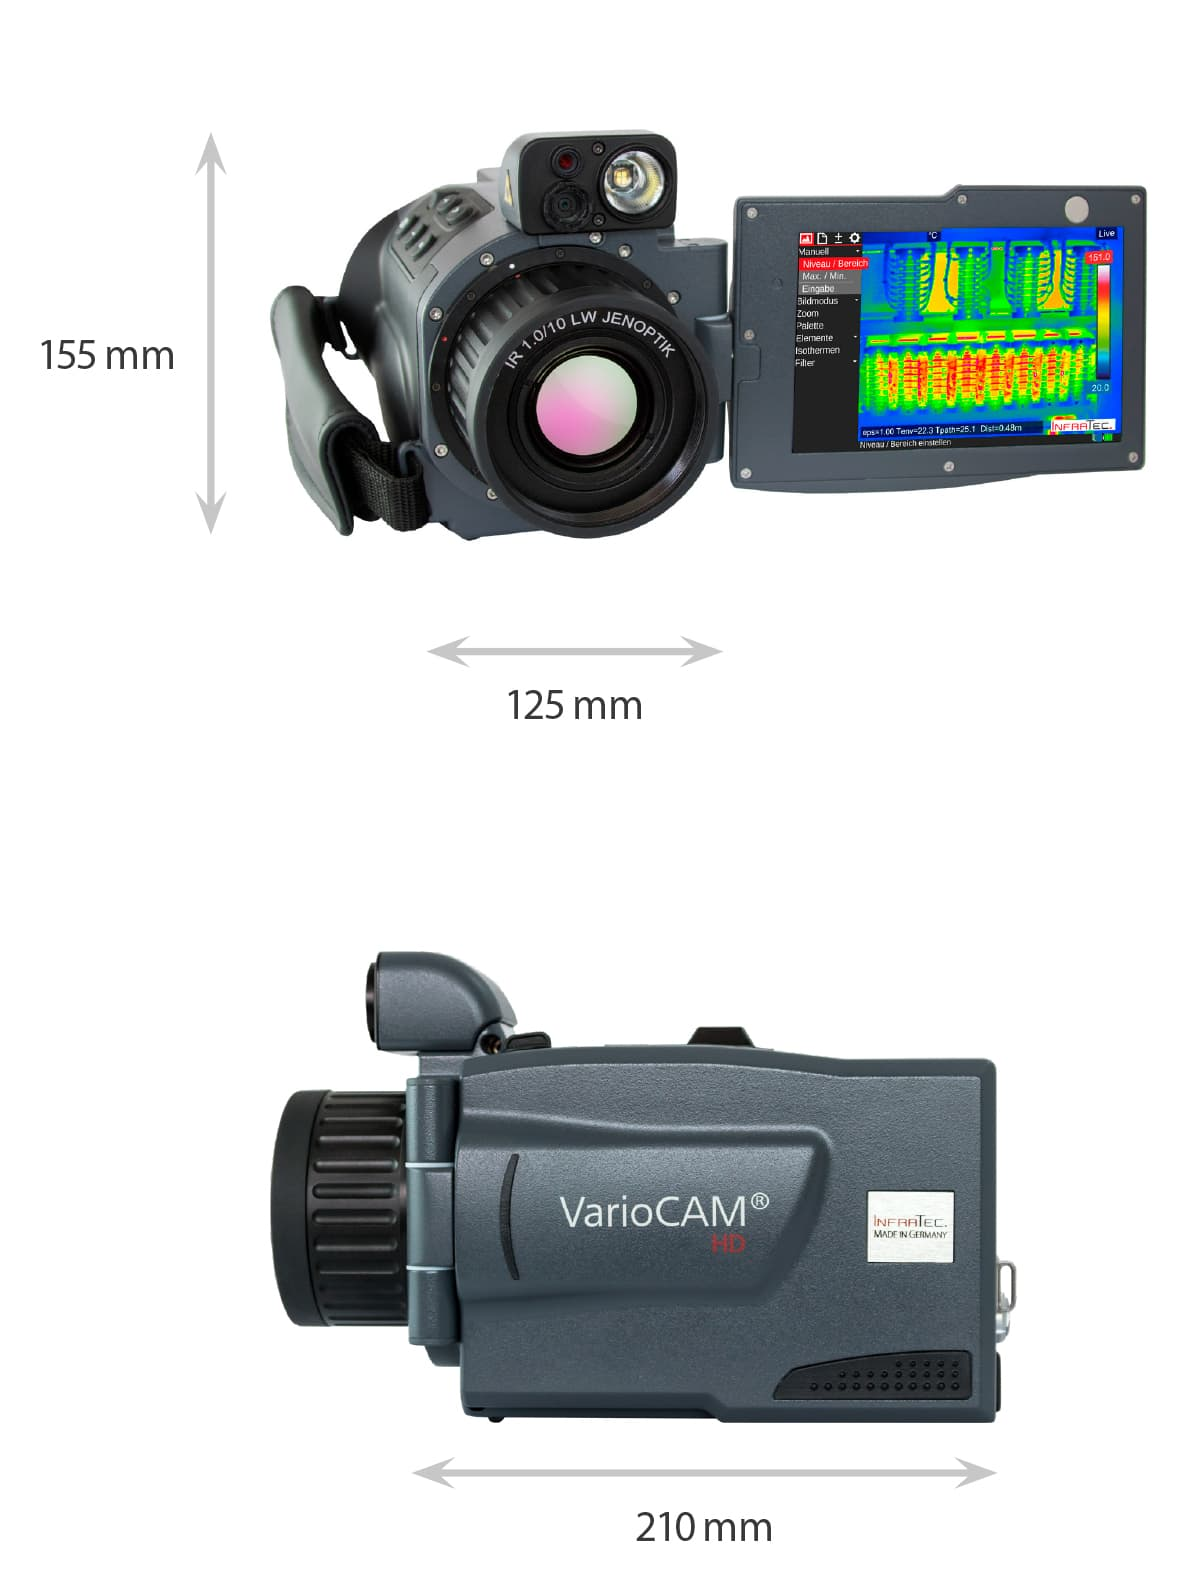 Dimensions of the VarioCAM HDx